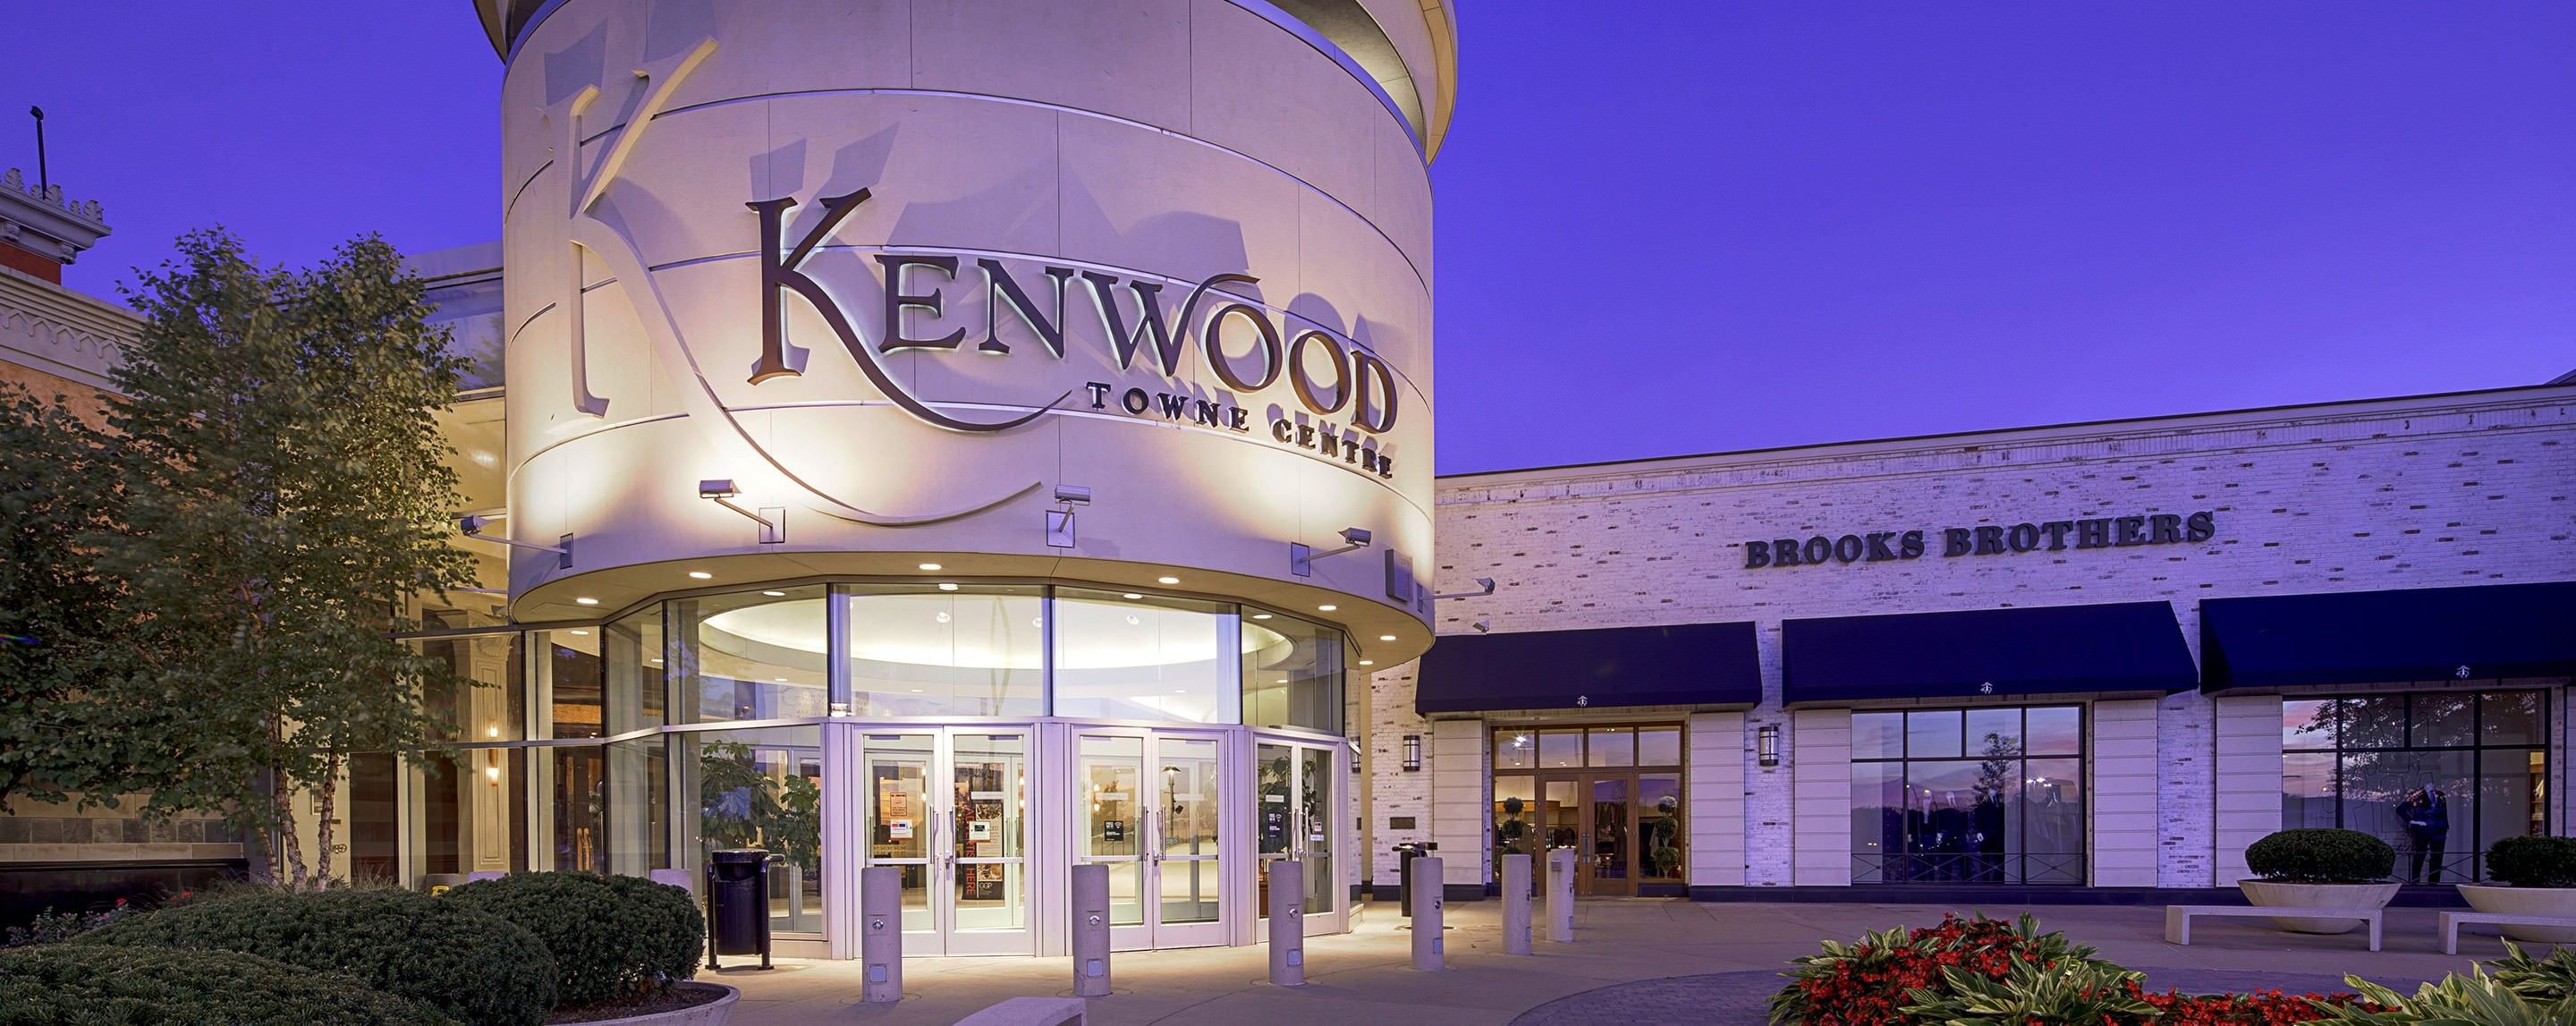 The Kenwood Town Center sign shines bright and is easily visible for shoppers to see at night.